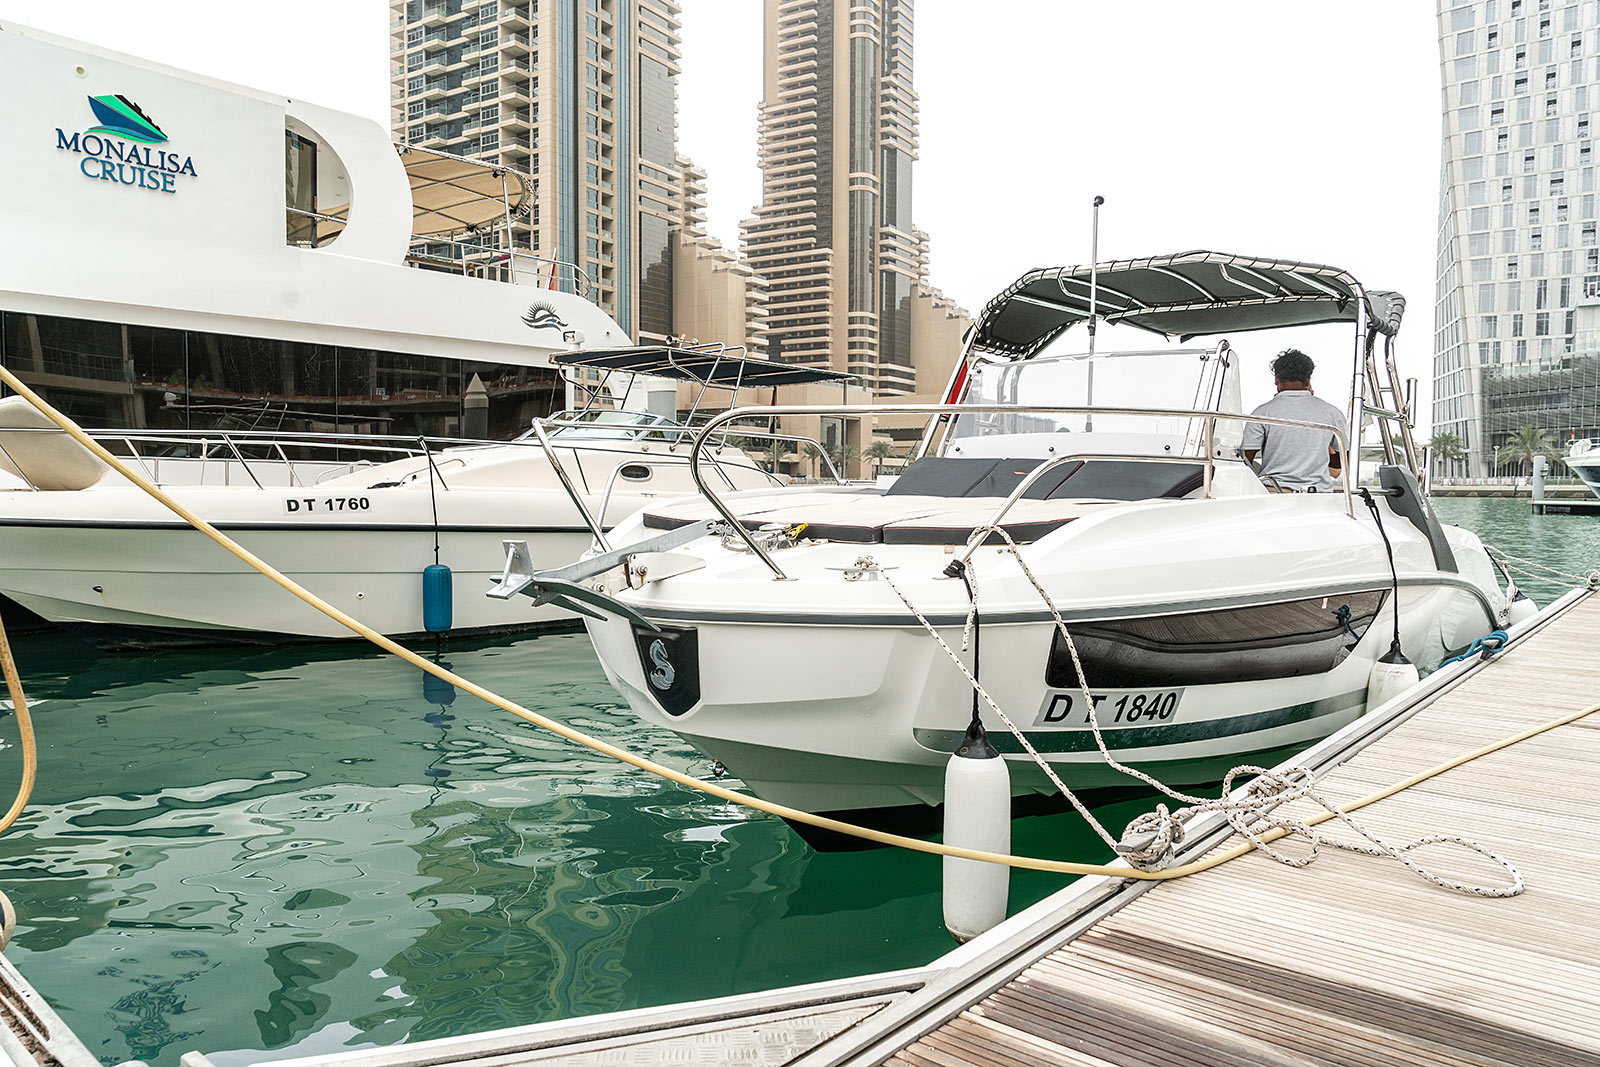 sea escape dubai yacht experience dubai marina travel sunnyinga